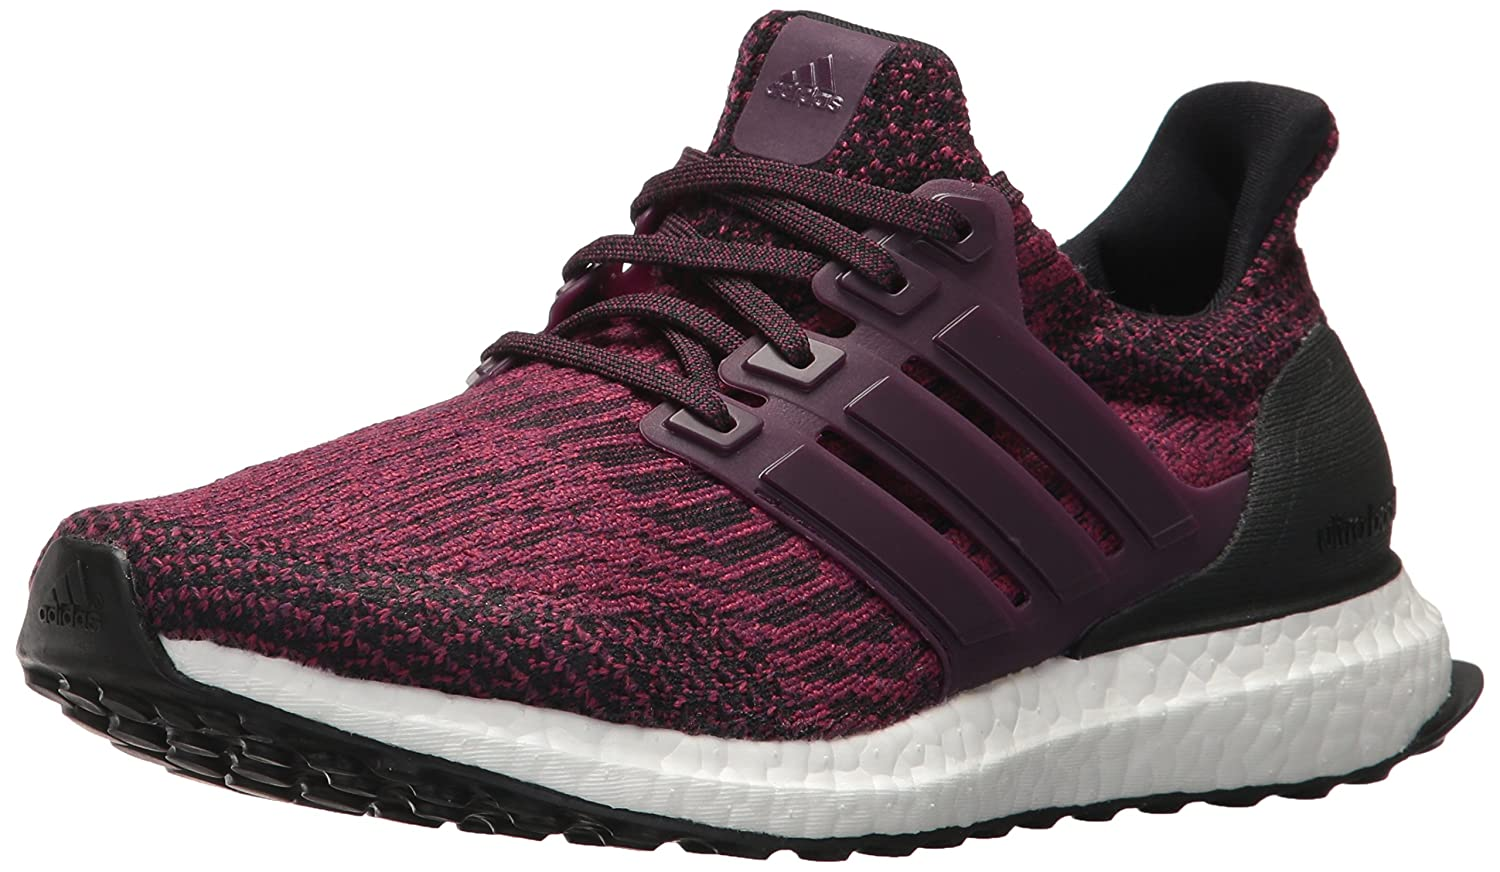 adidas Women's Ultraboost W Running Shoe B06XWSZXZ1 9.5 B(M) US|Red Night/Red Night/Black